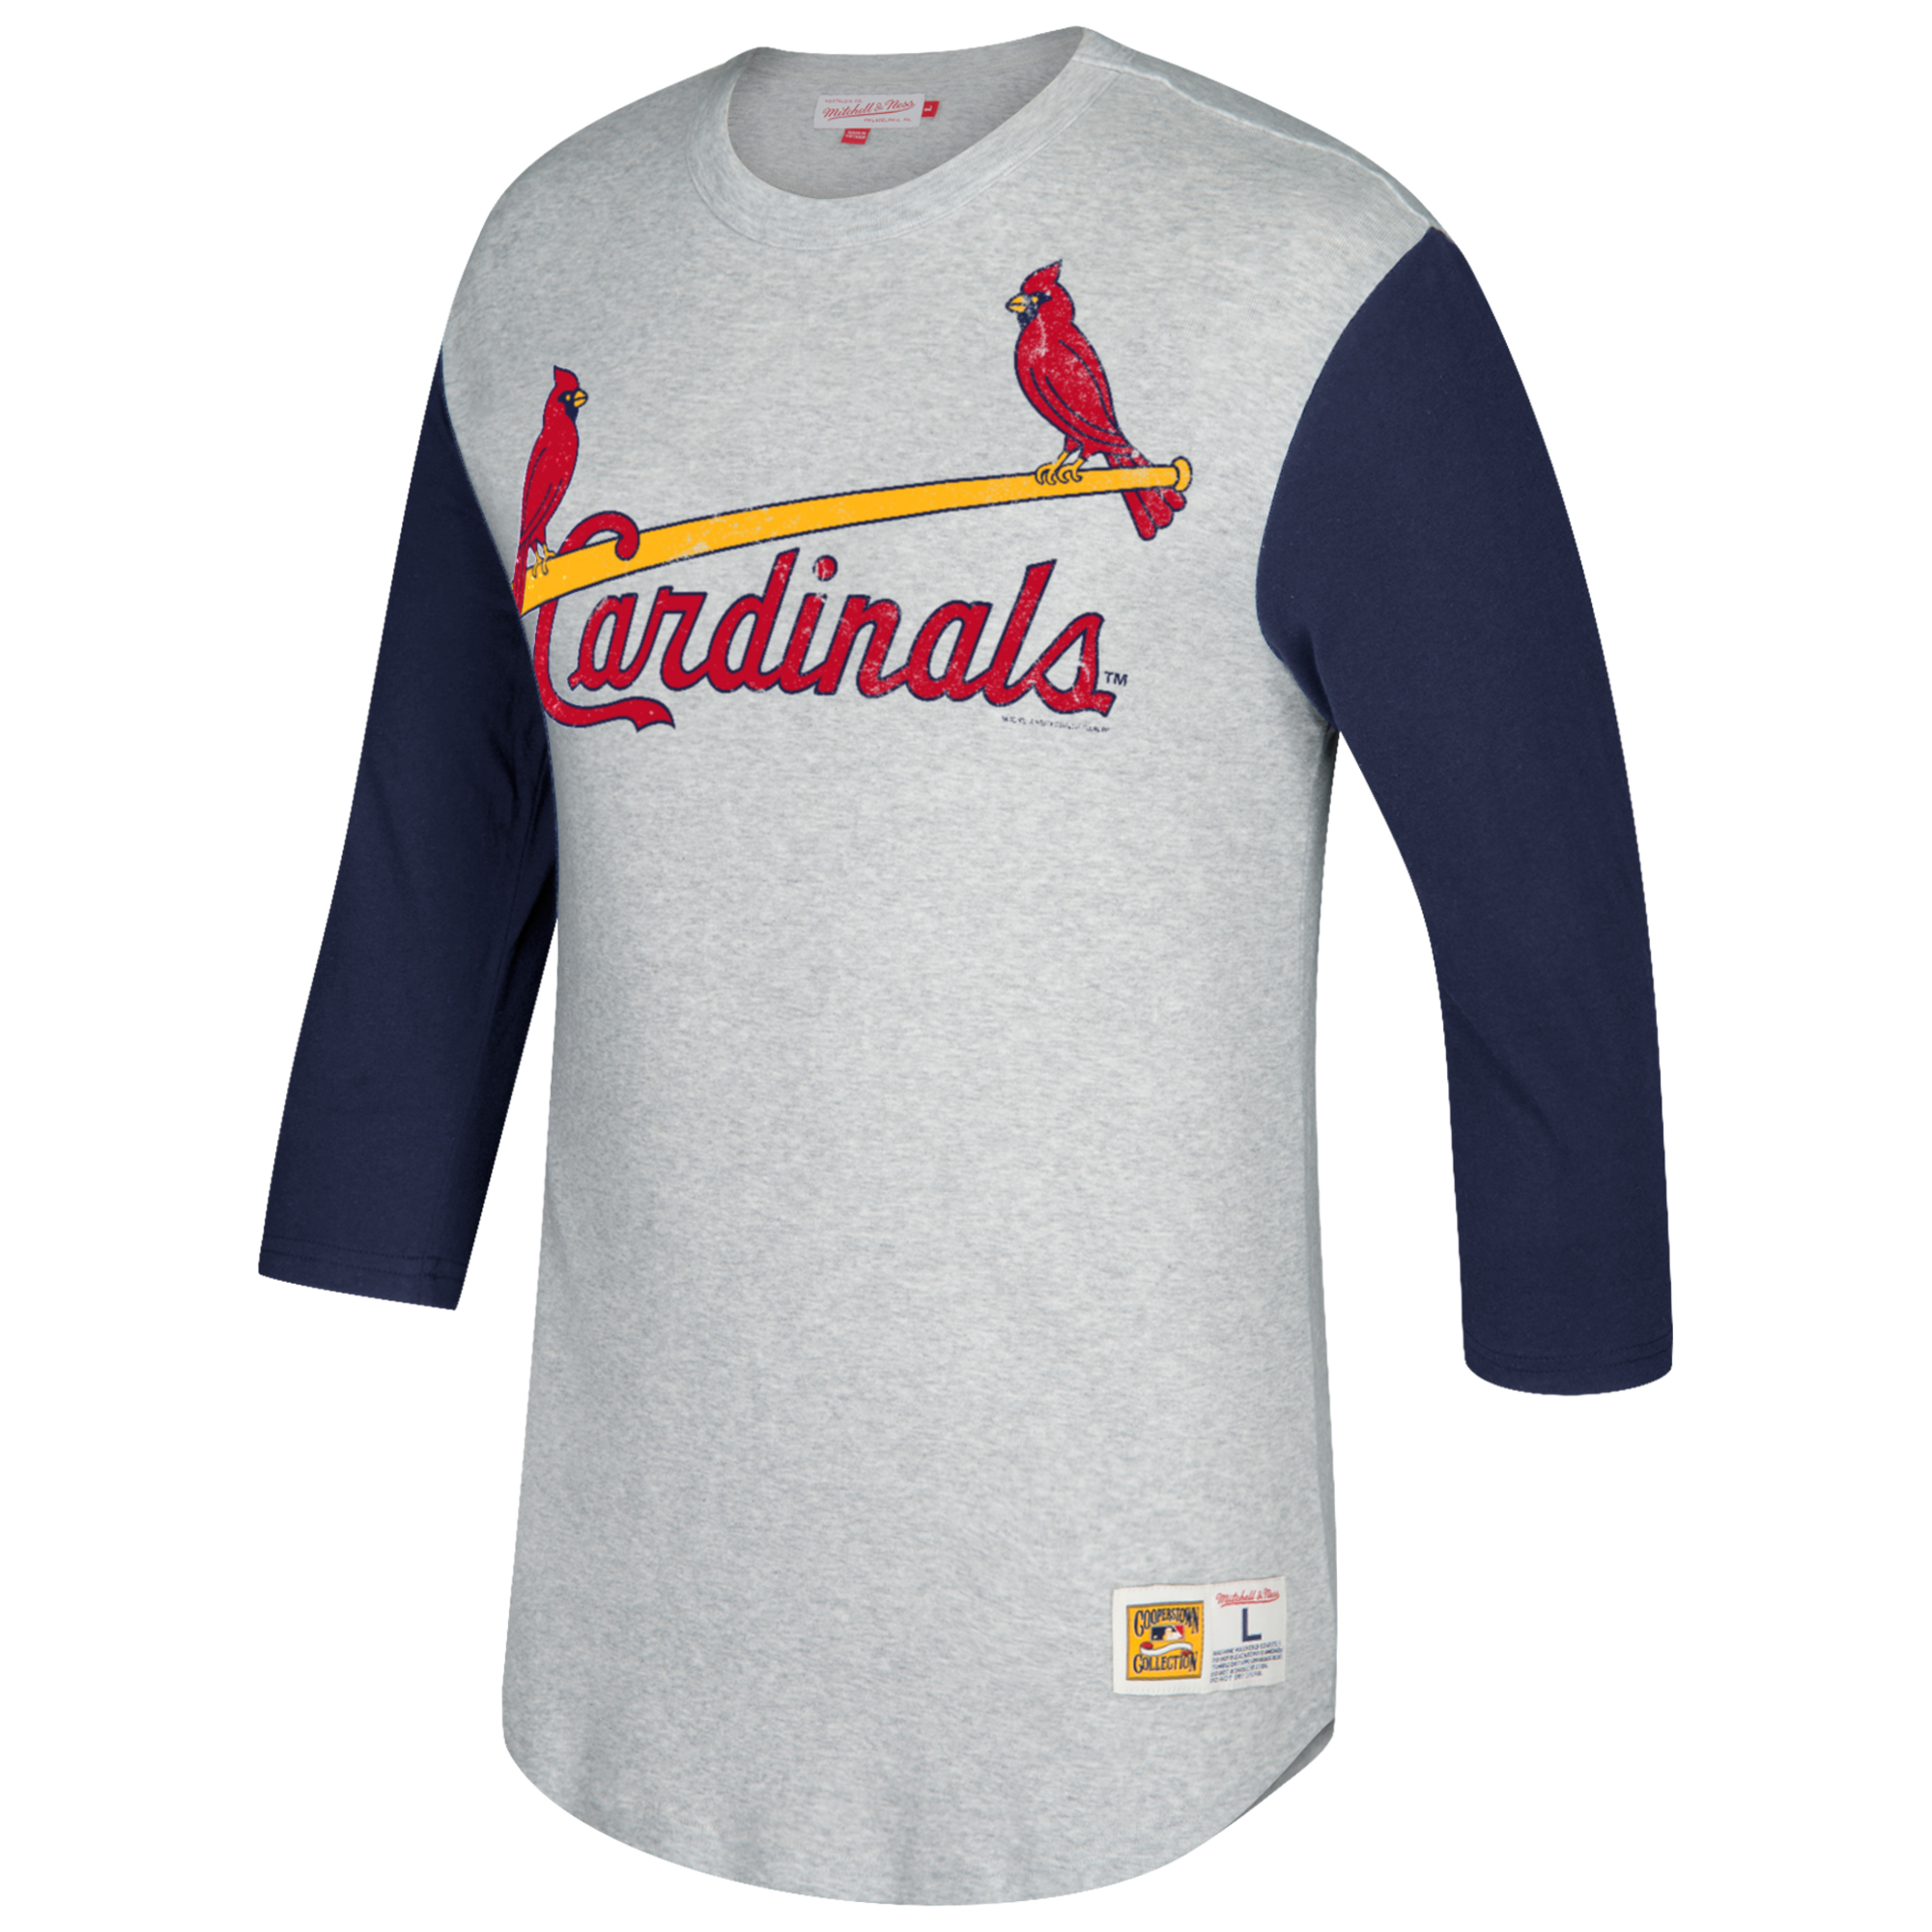 St. Louis Cardinals Mitchell & Ness Scoring Position 3/4-Sleeve T-Shirt - Gray/Navy